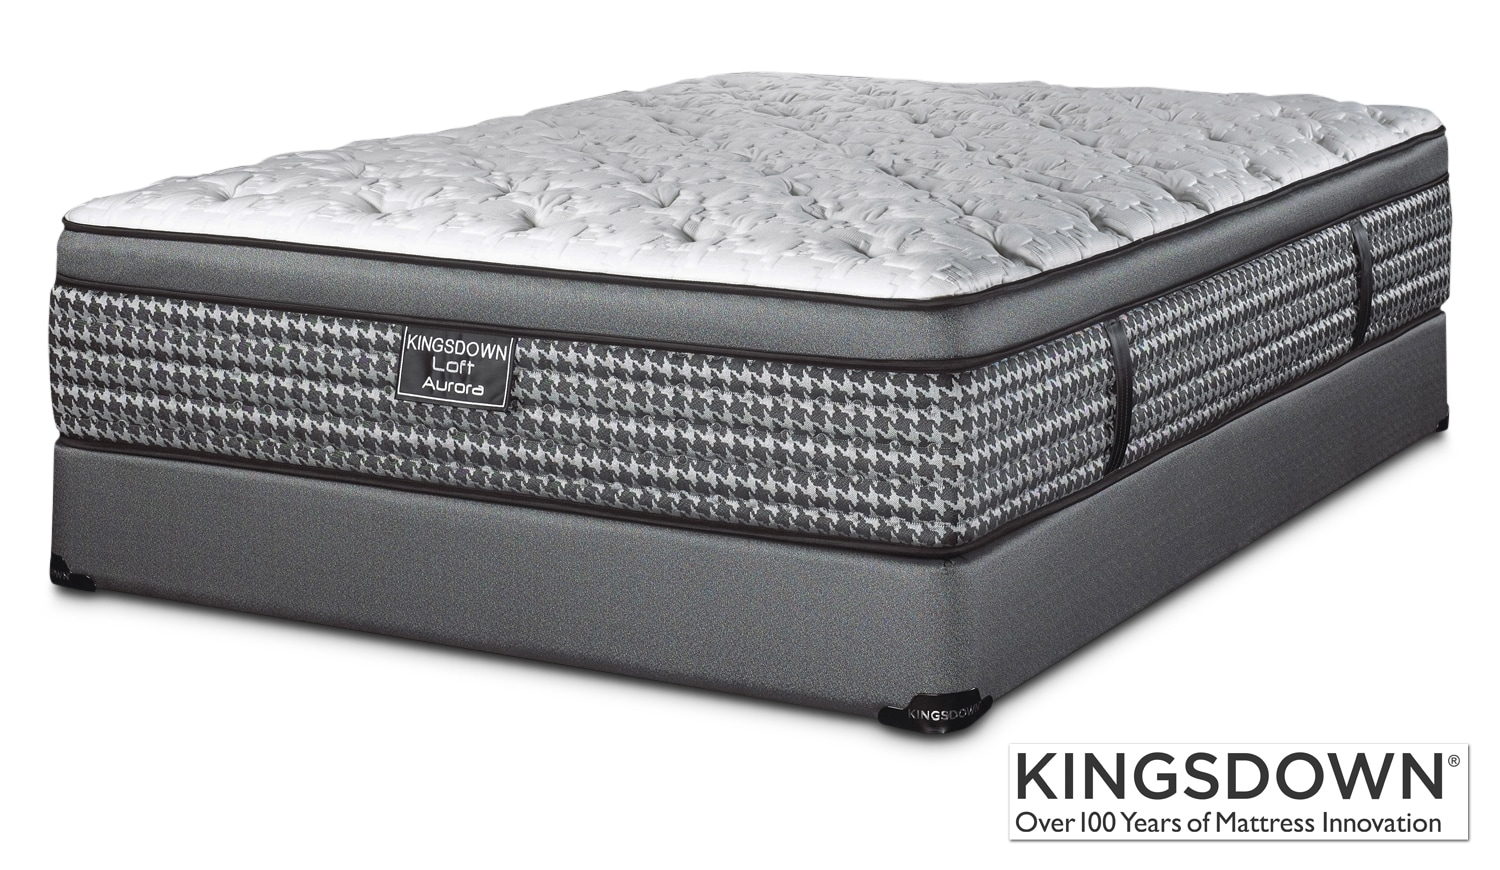 Mattresses and Bedding - Kingsdown Aurora Queen Mattress/Boxspring Set